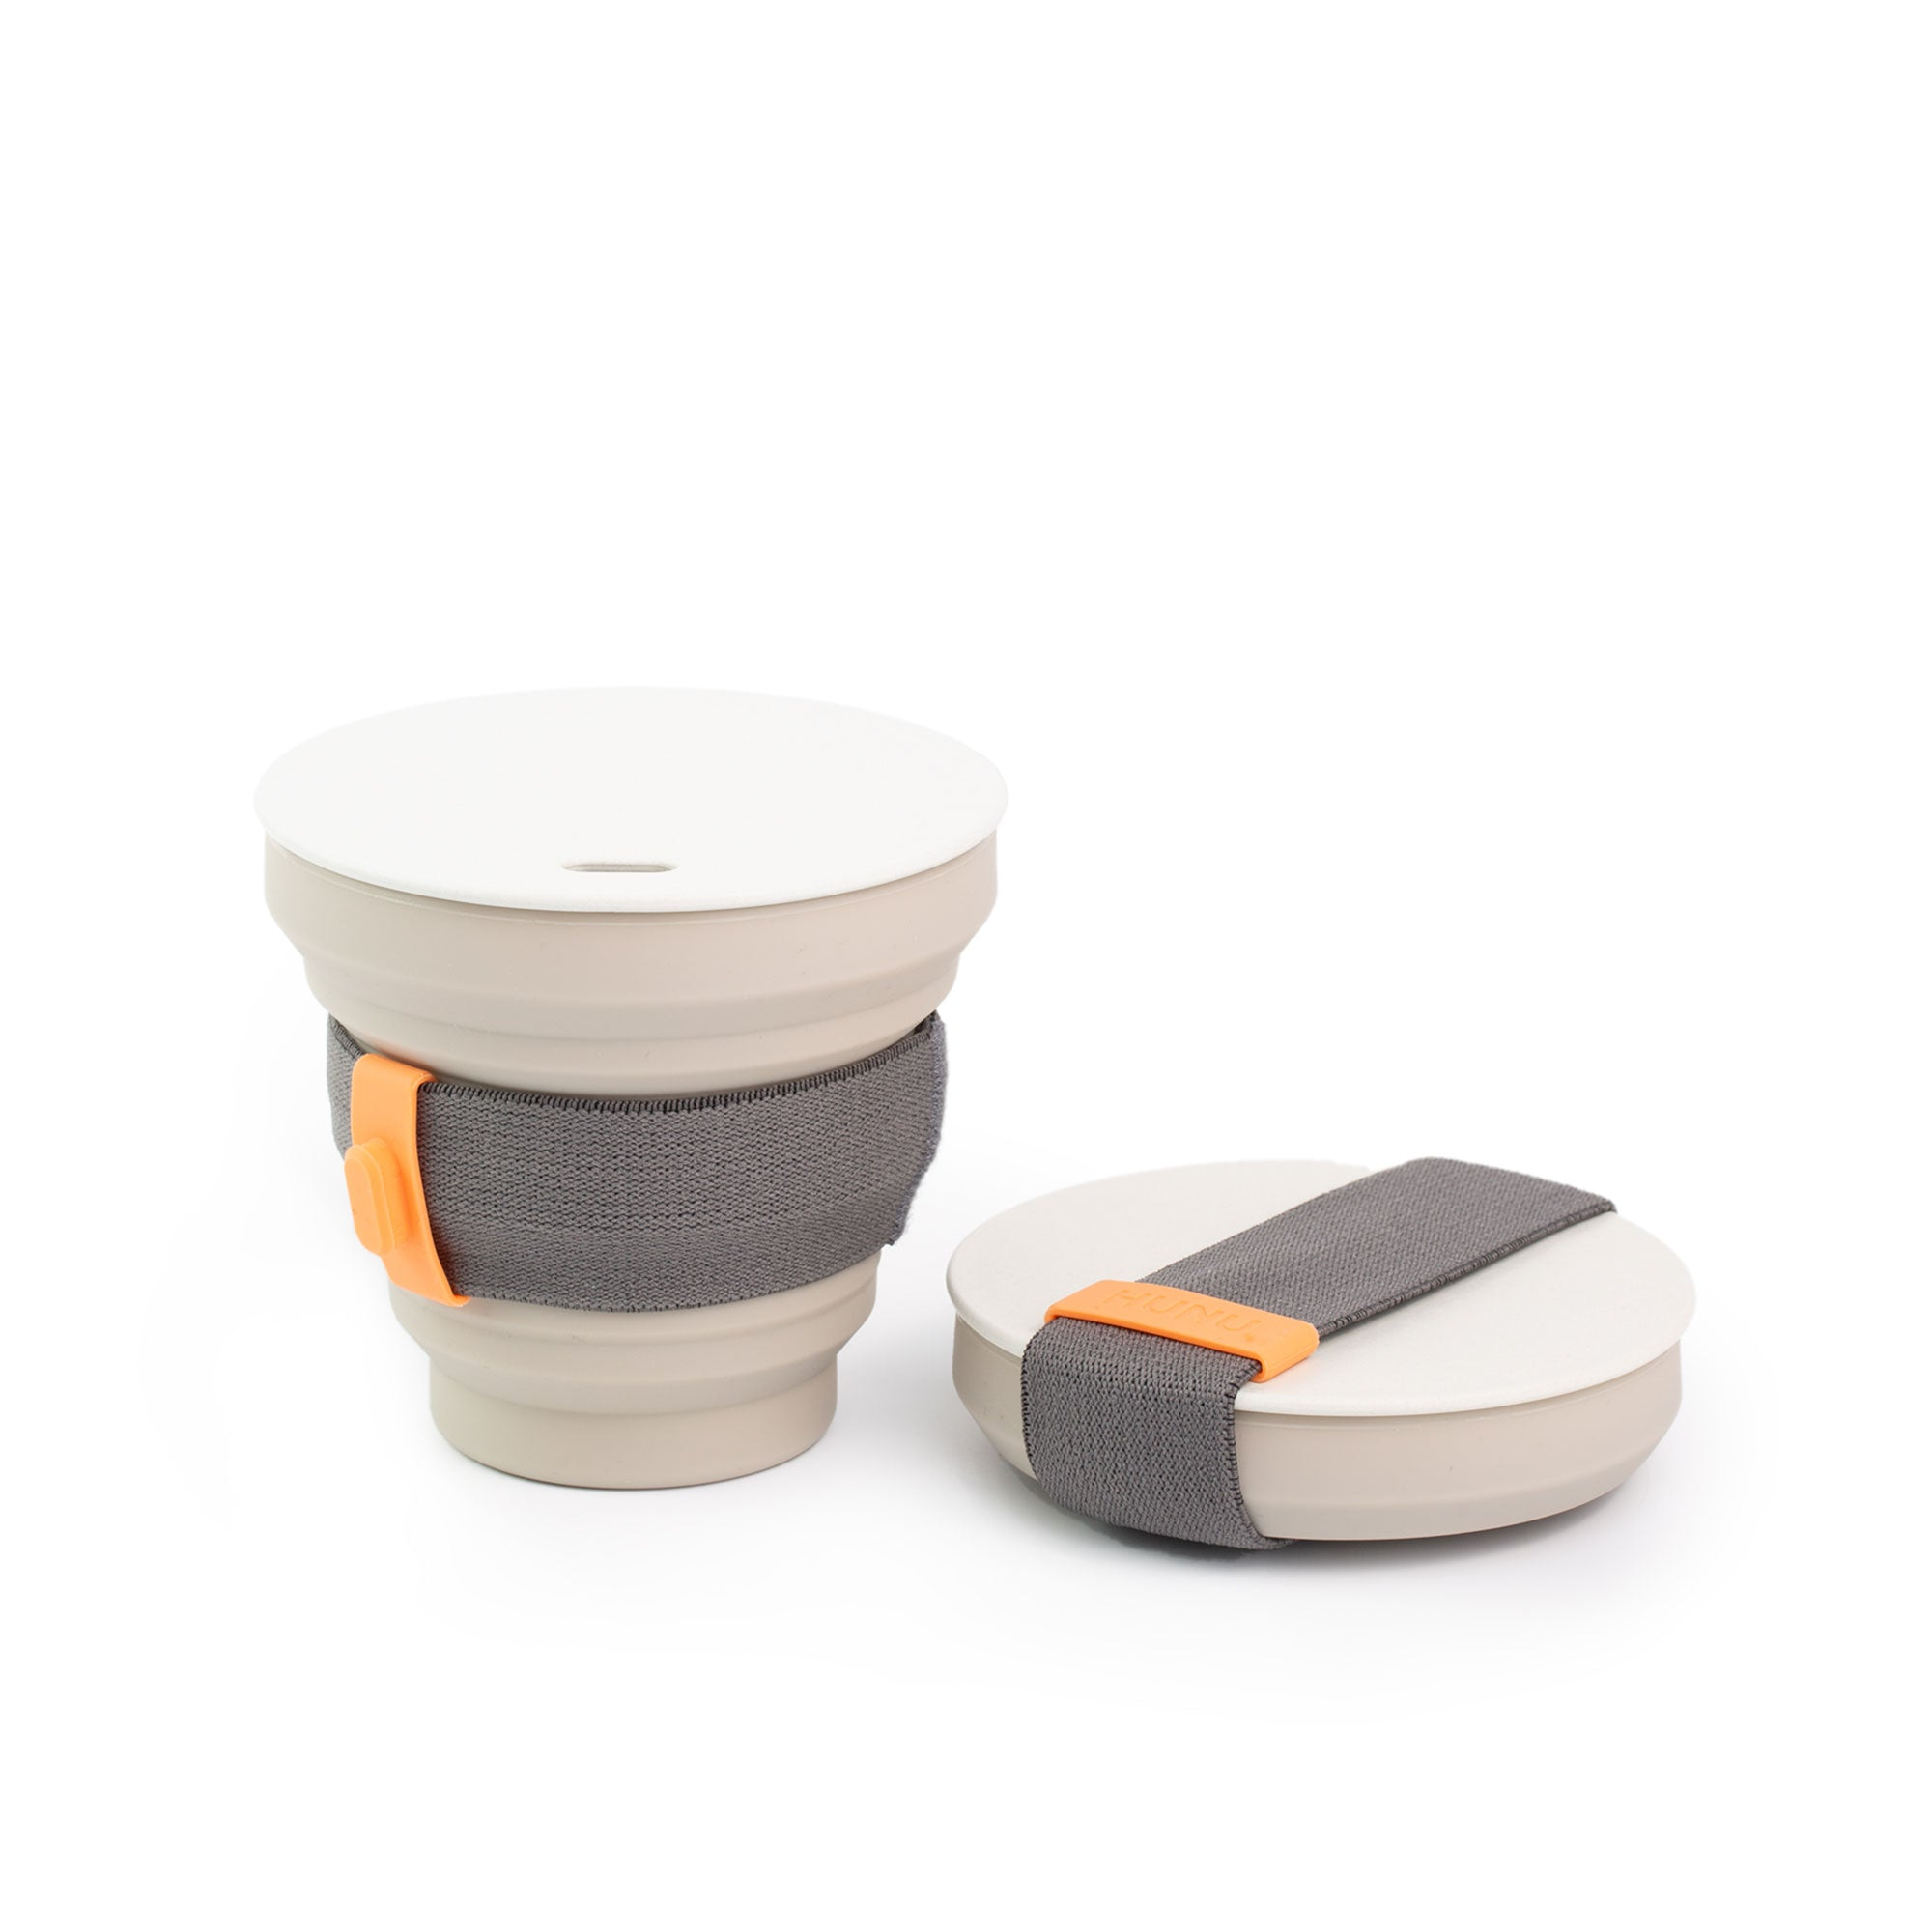 HUNU - The Pocket Sized Cup in Grey